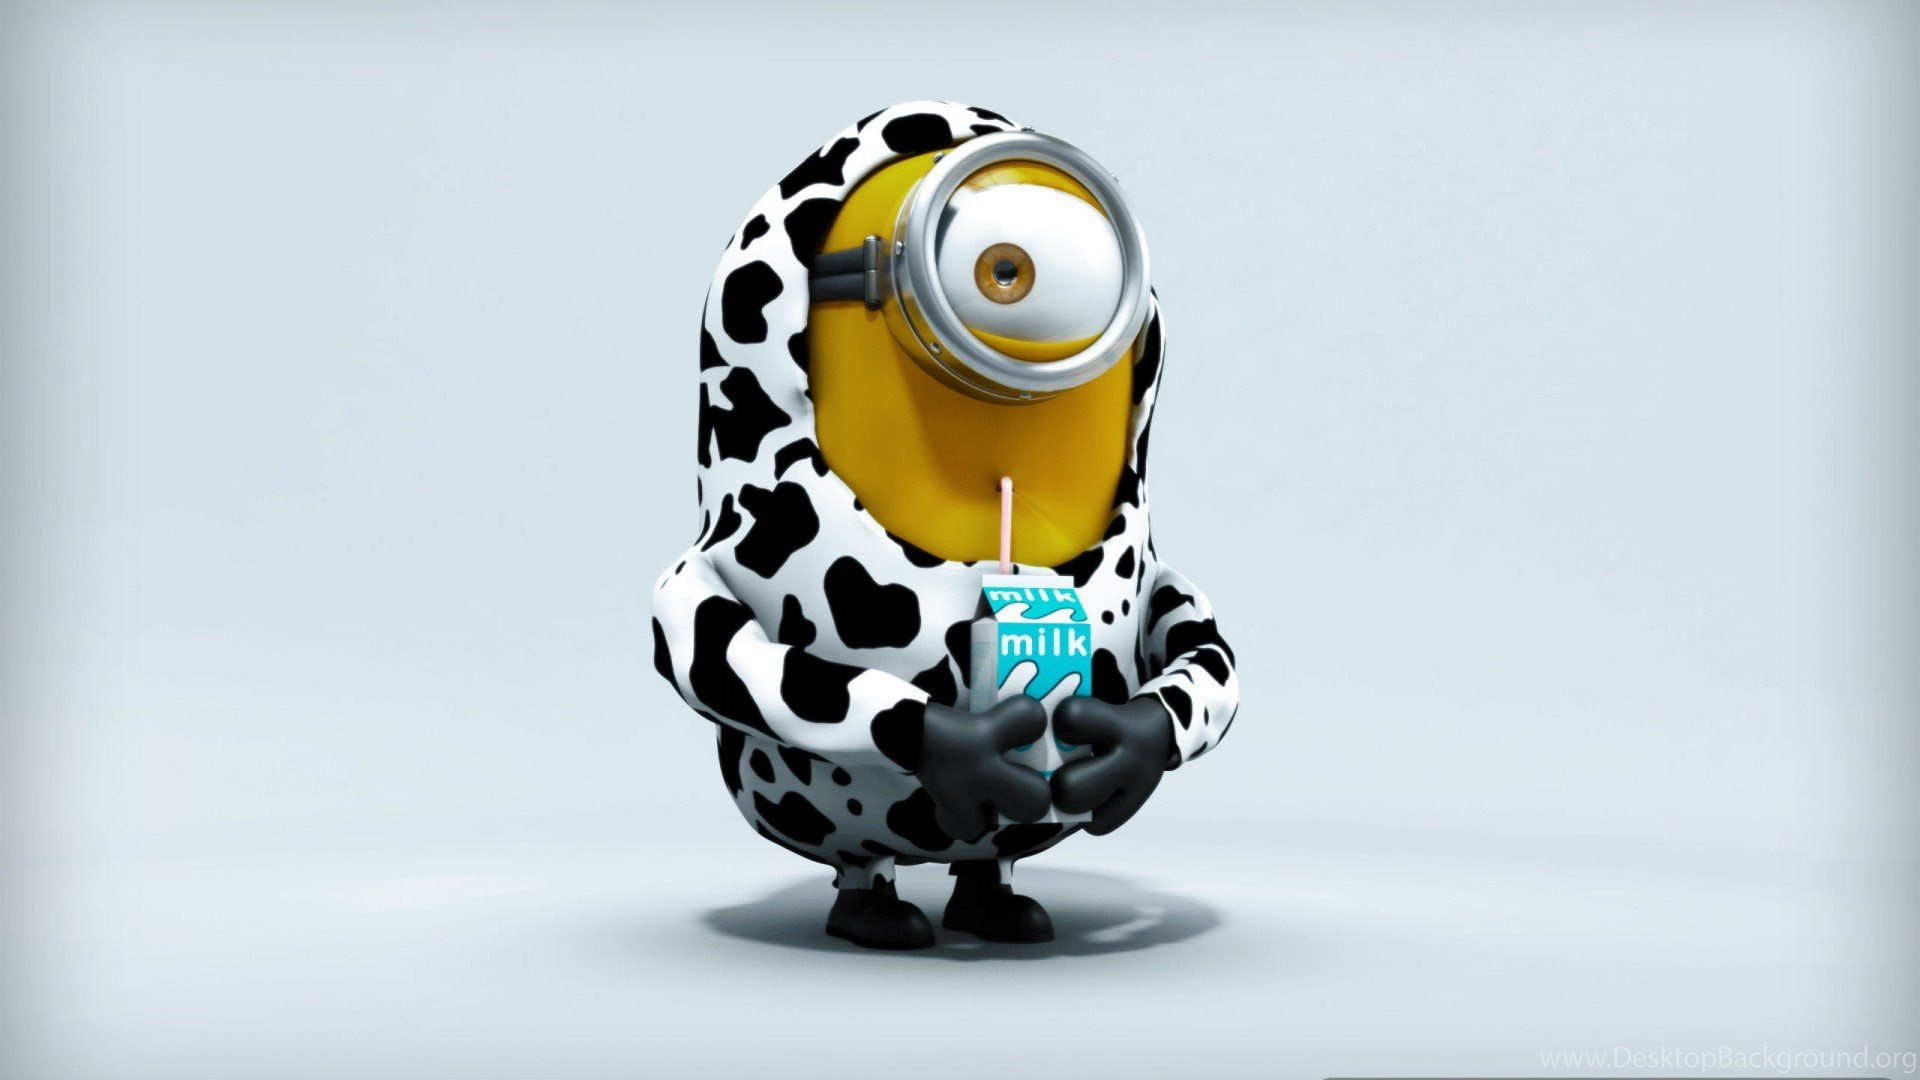 cow minion 1920x1080 (1080p) wallpapers minions wallpapers desktop